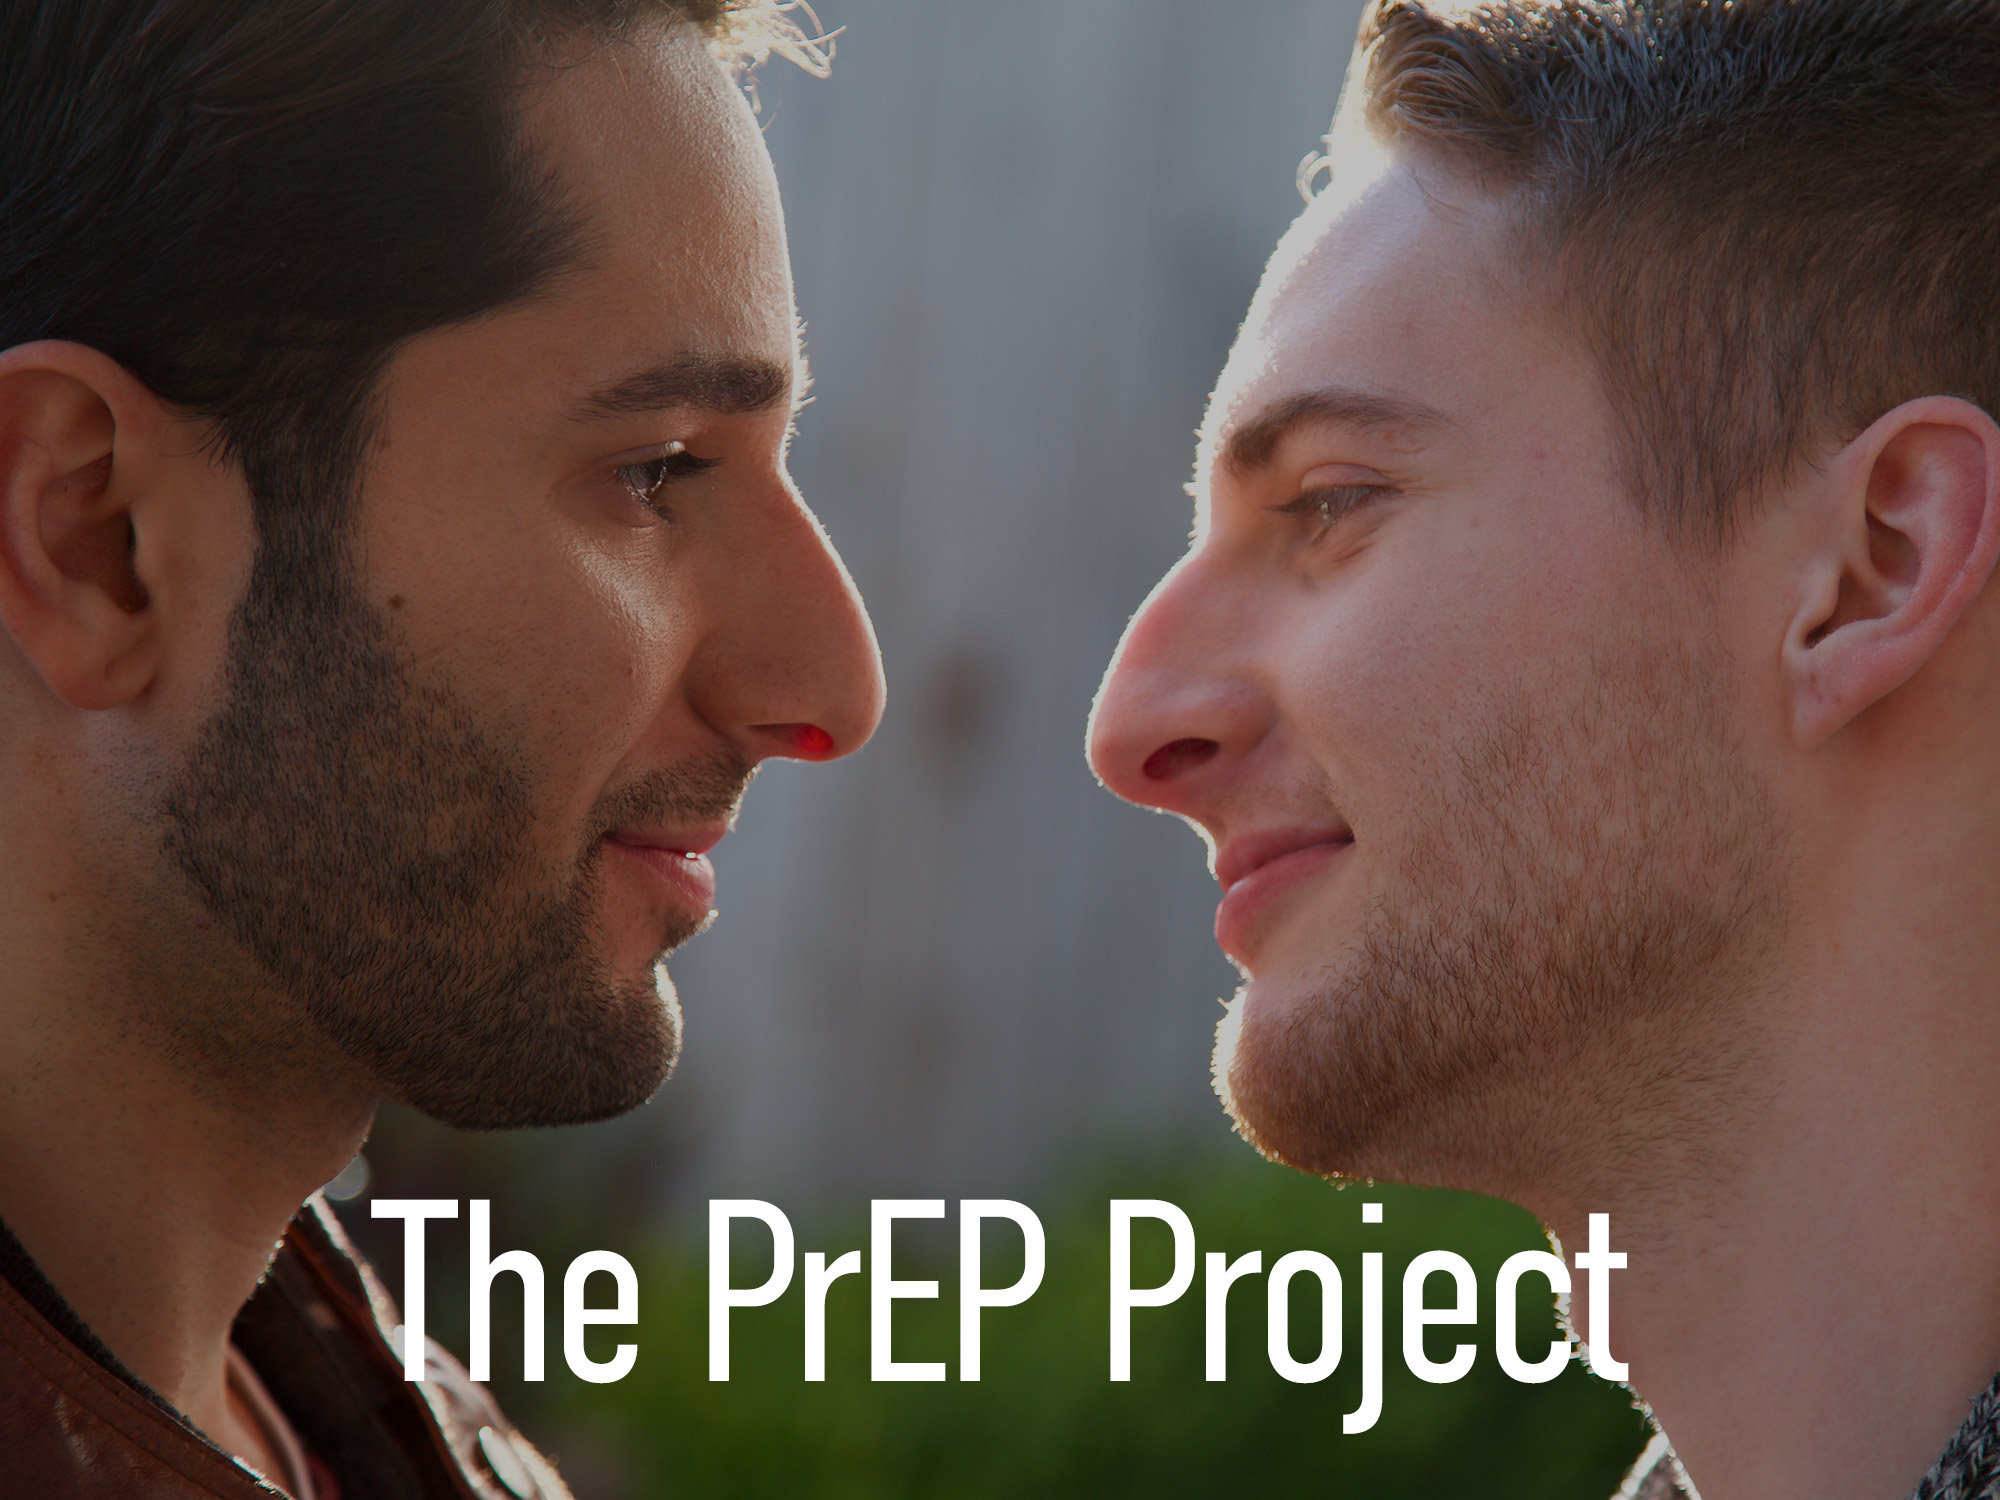 The PrEP Project